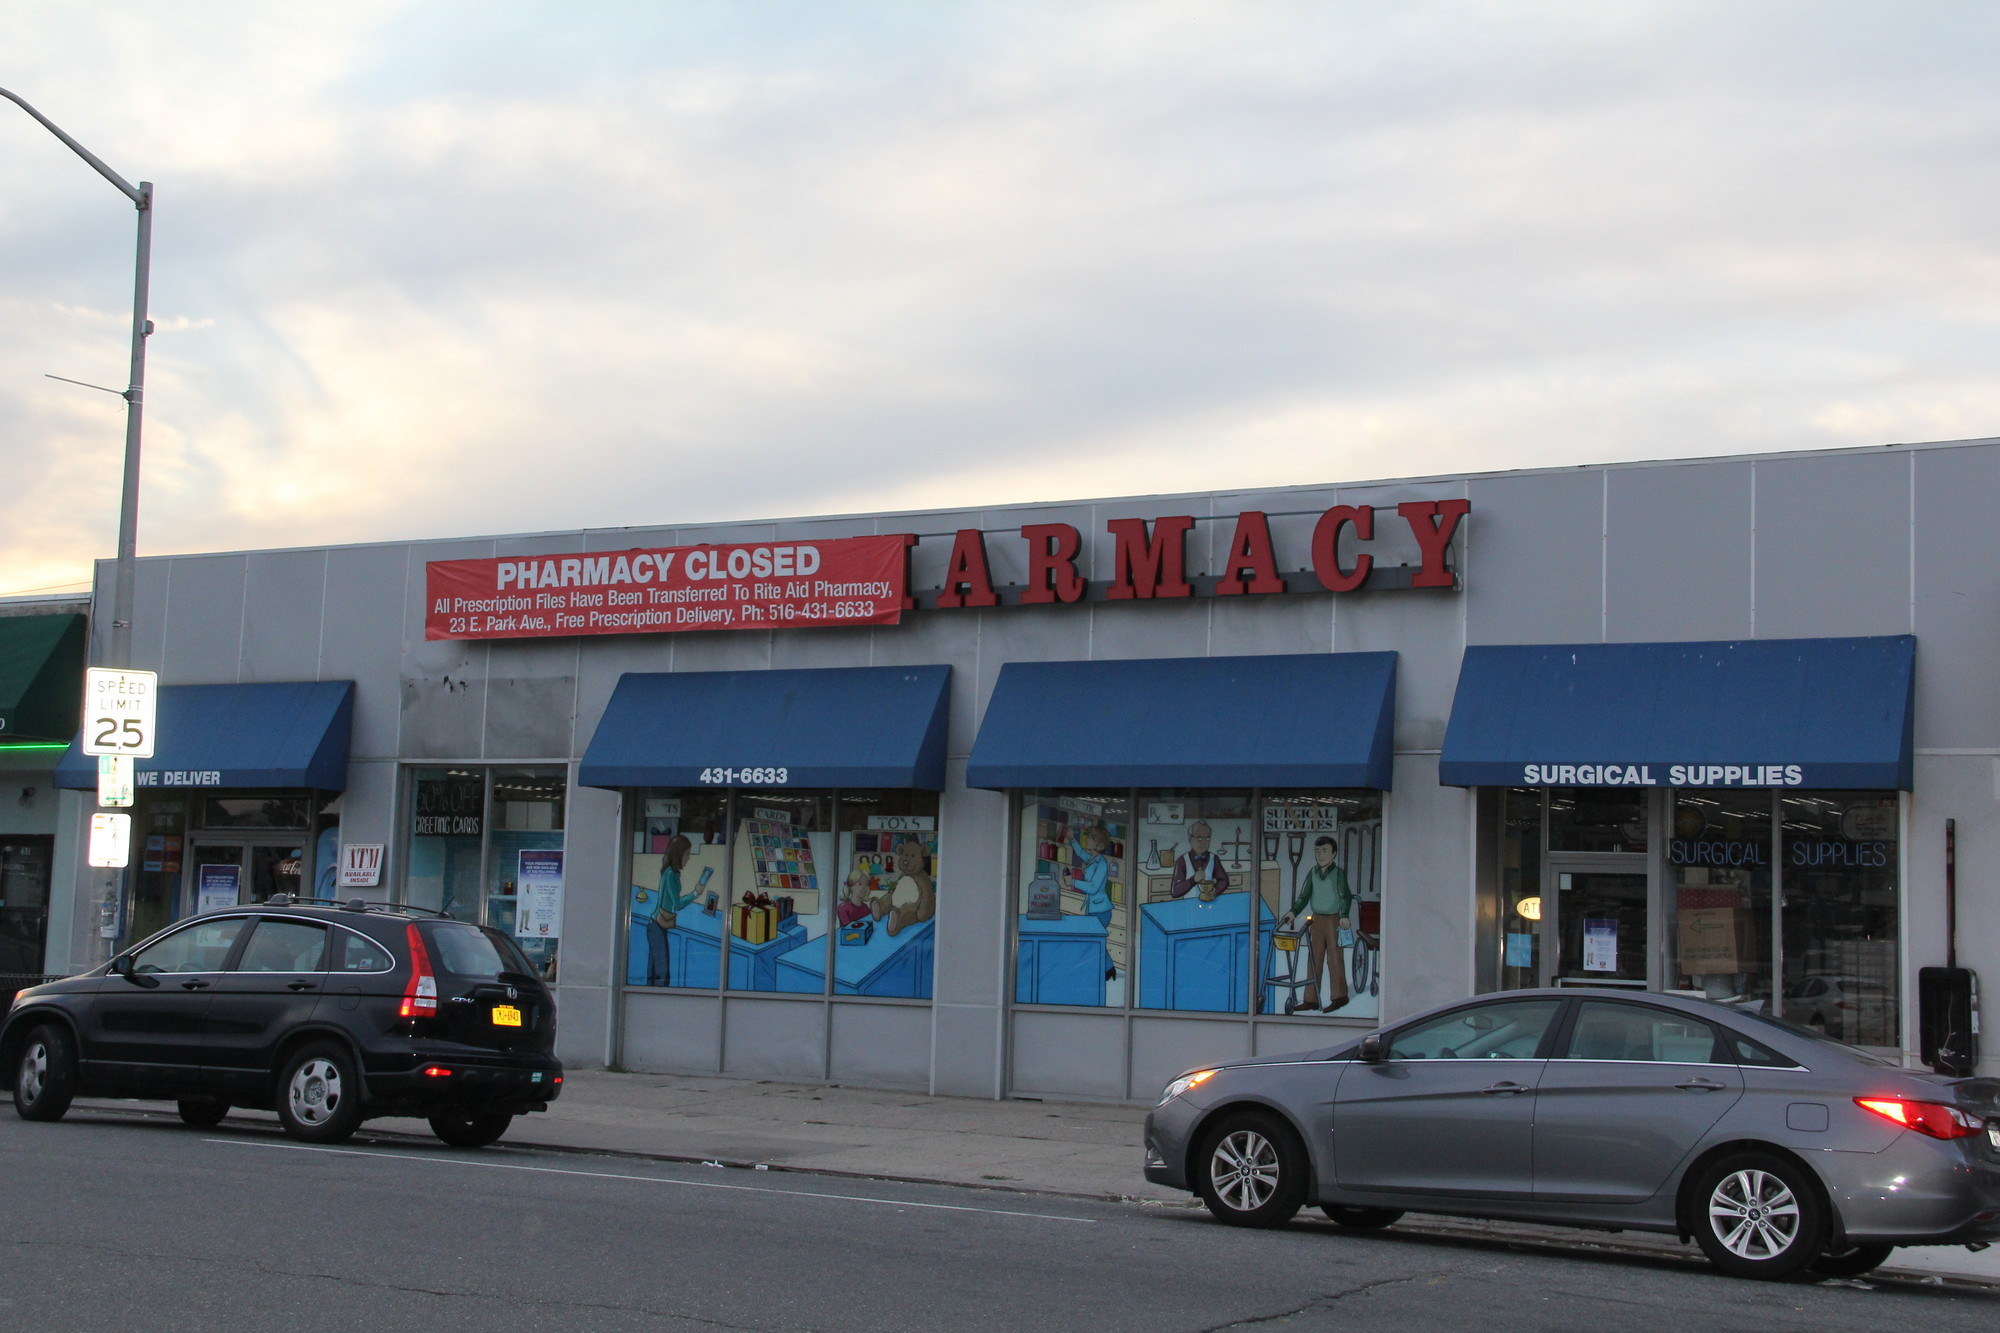 Kings pharmacy at 639 E. Park Ave. closed its doors on Monday. A sign on the door said that it had merged with Rite Aid.